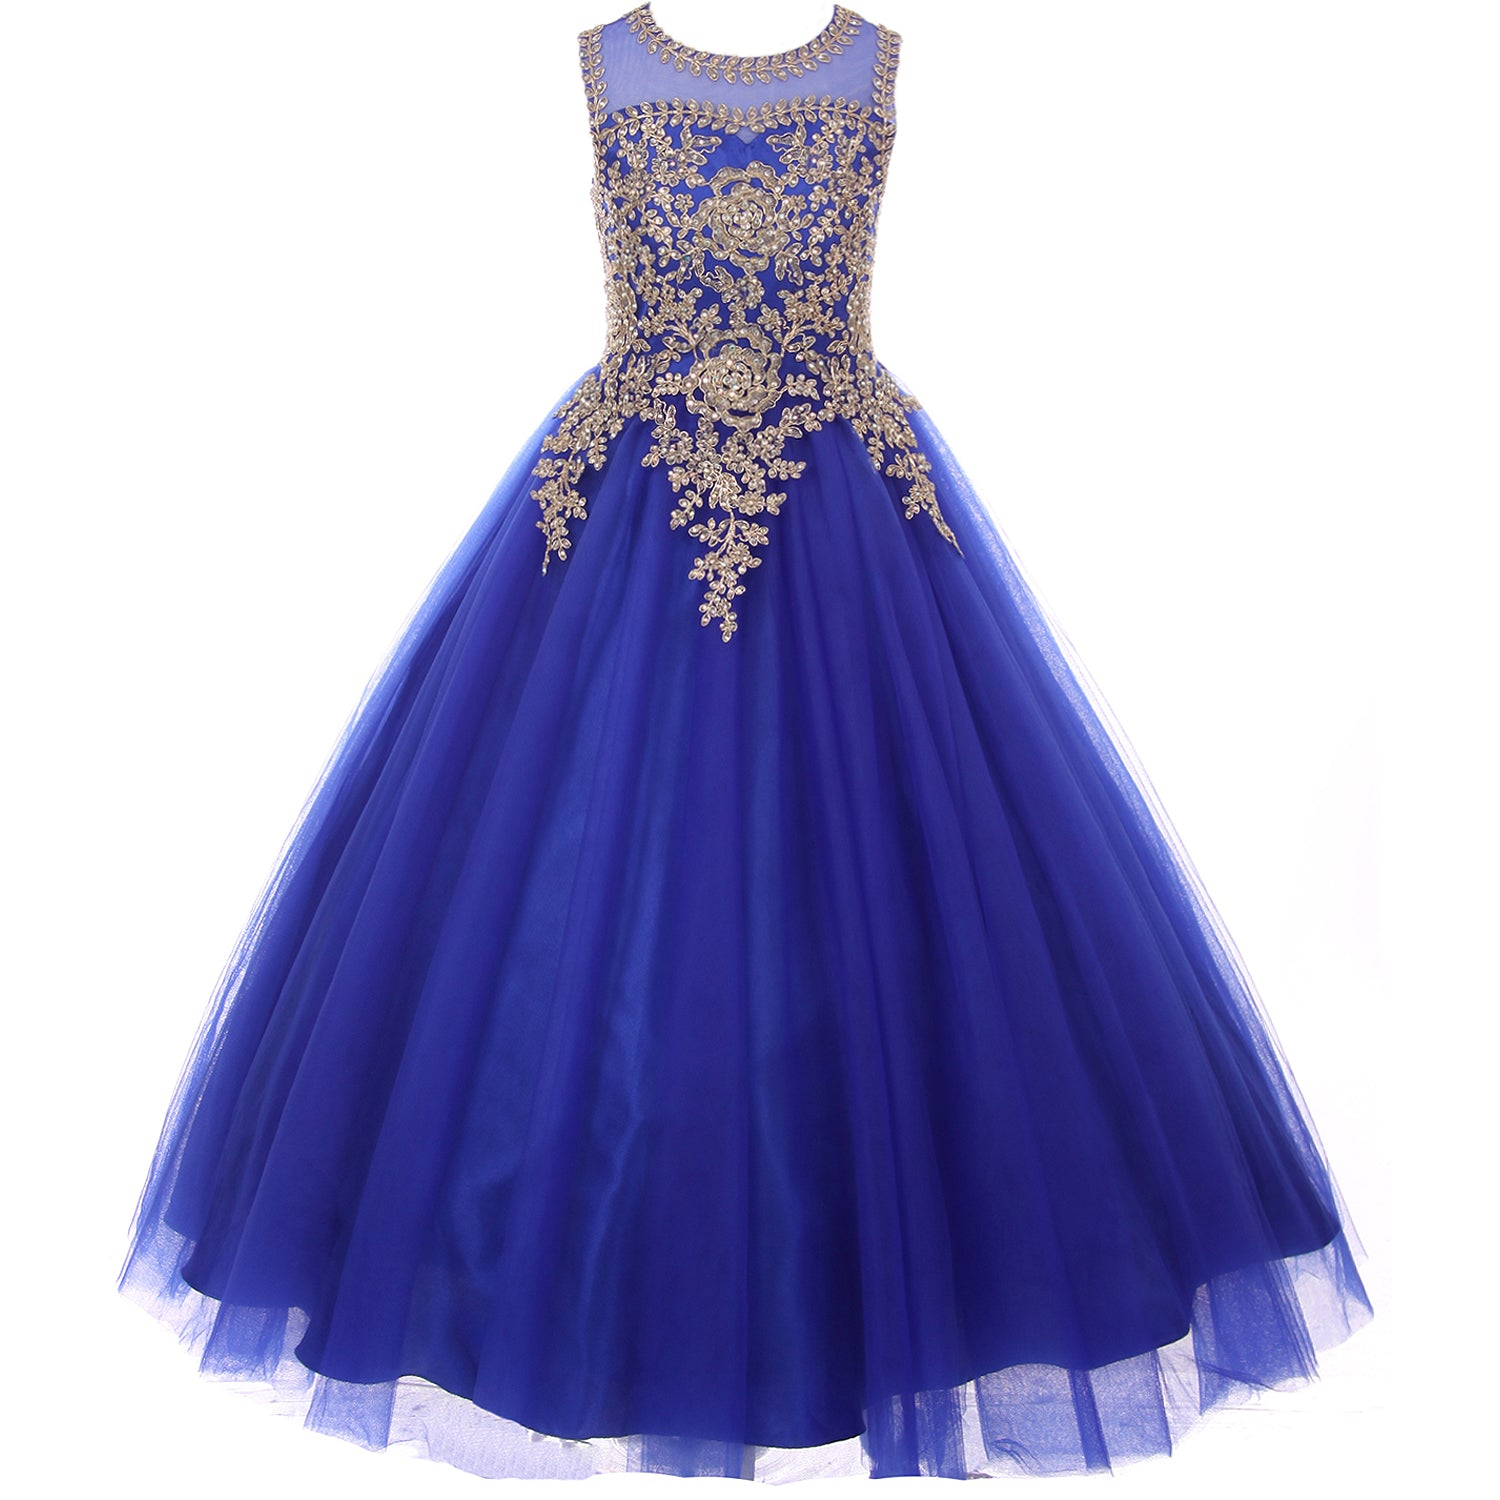 FULL LENGTH GOLD COILED TRIMMED BODICE ILLUSION BATEAU GIRL DRESS